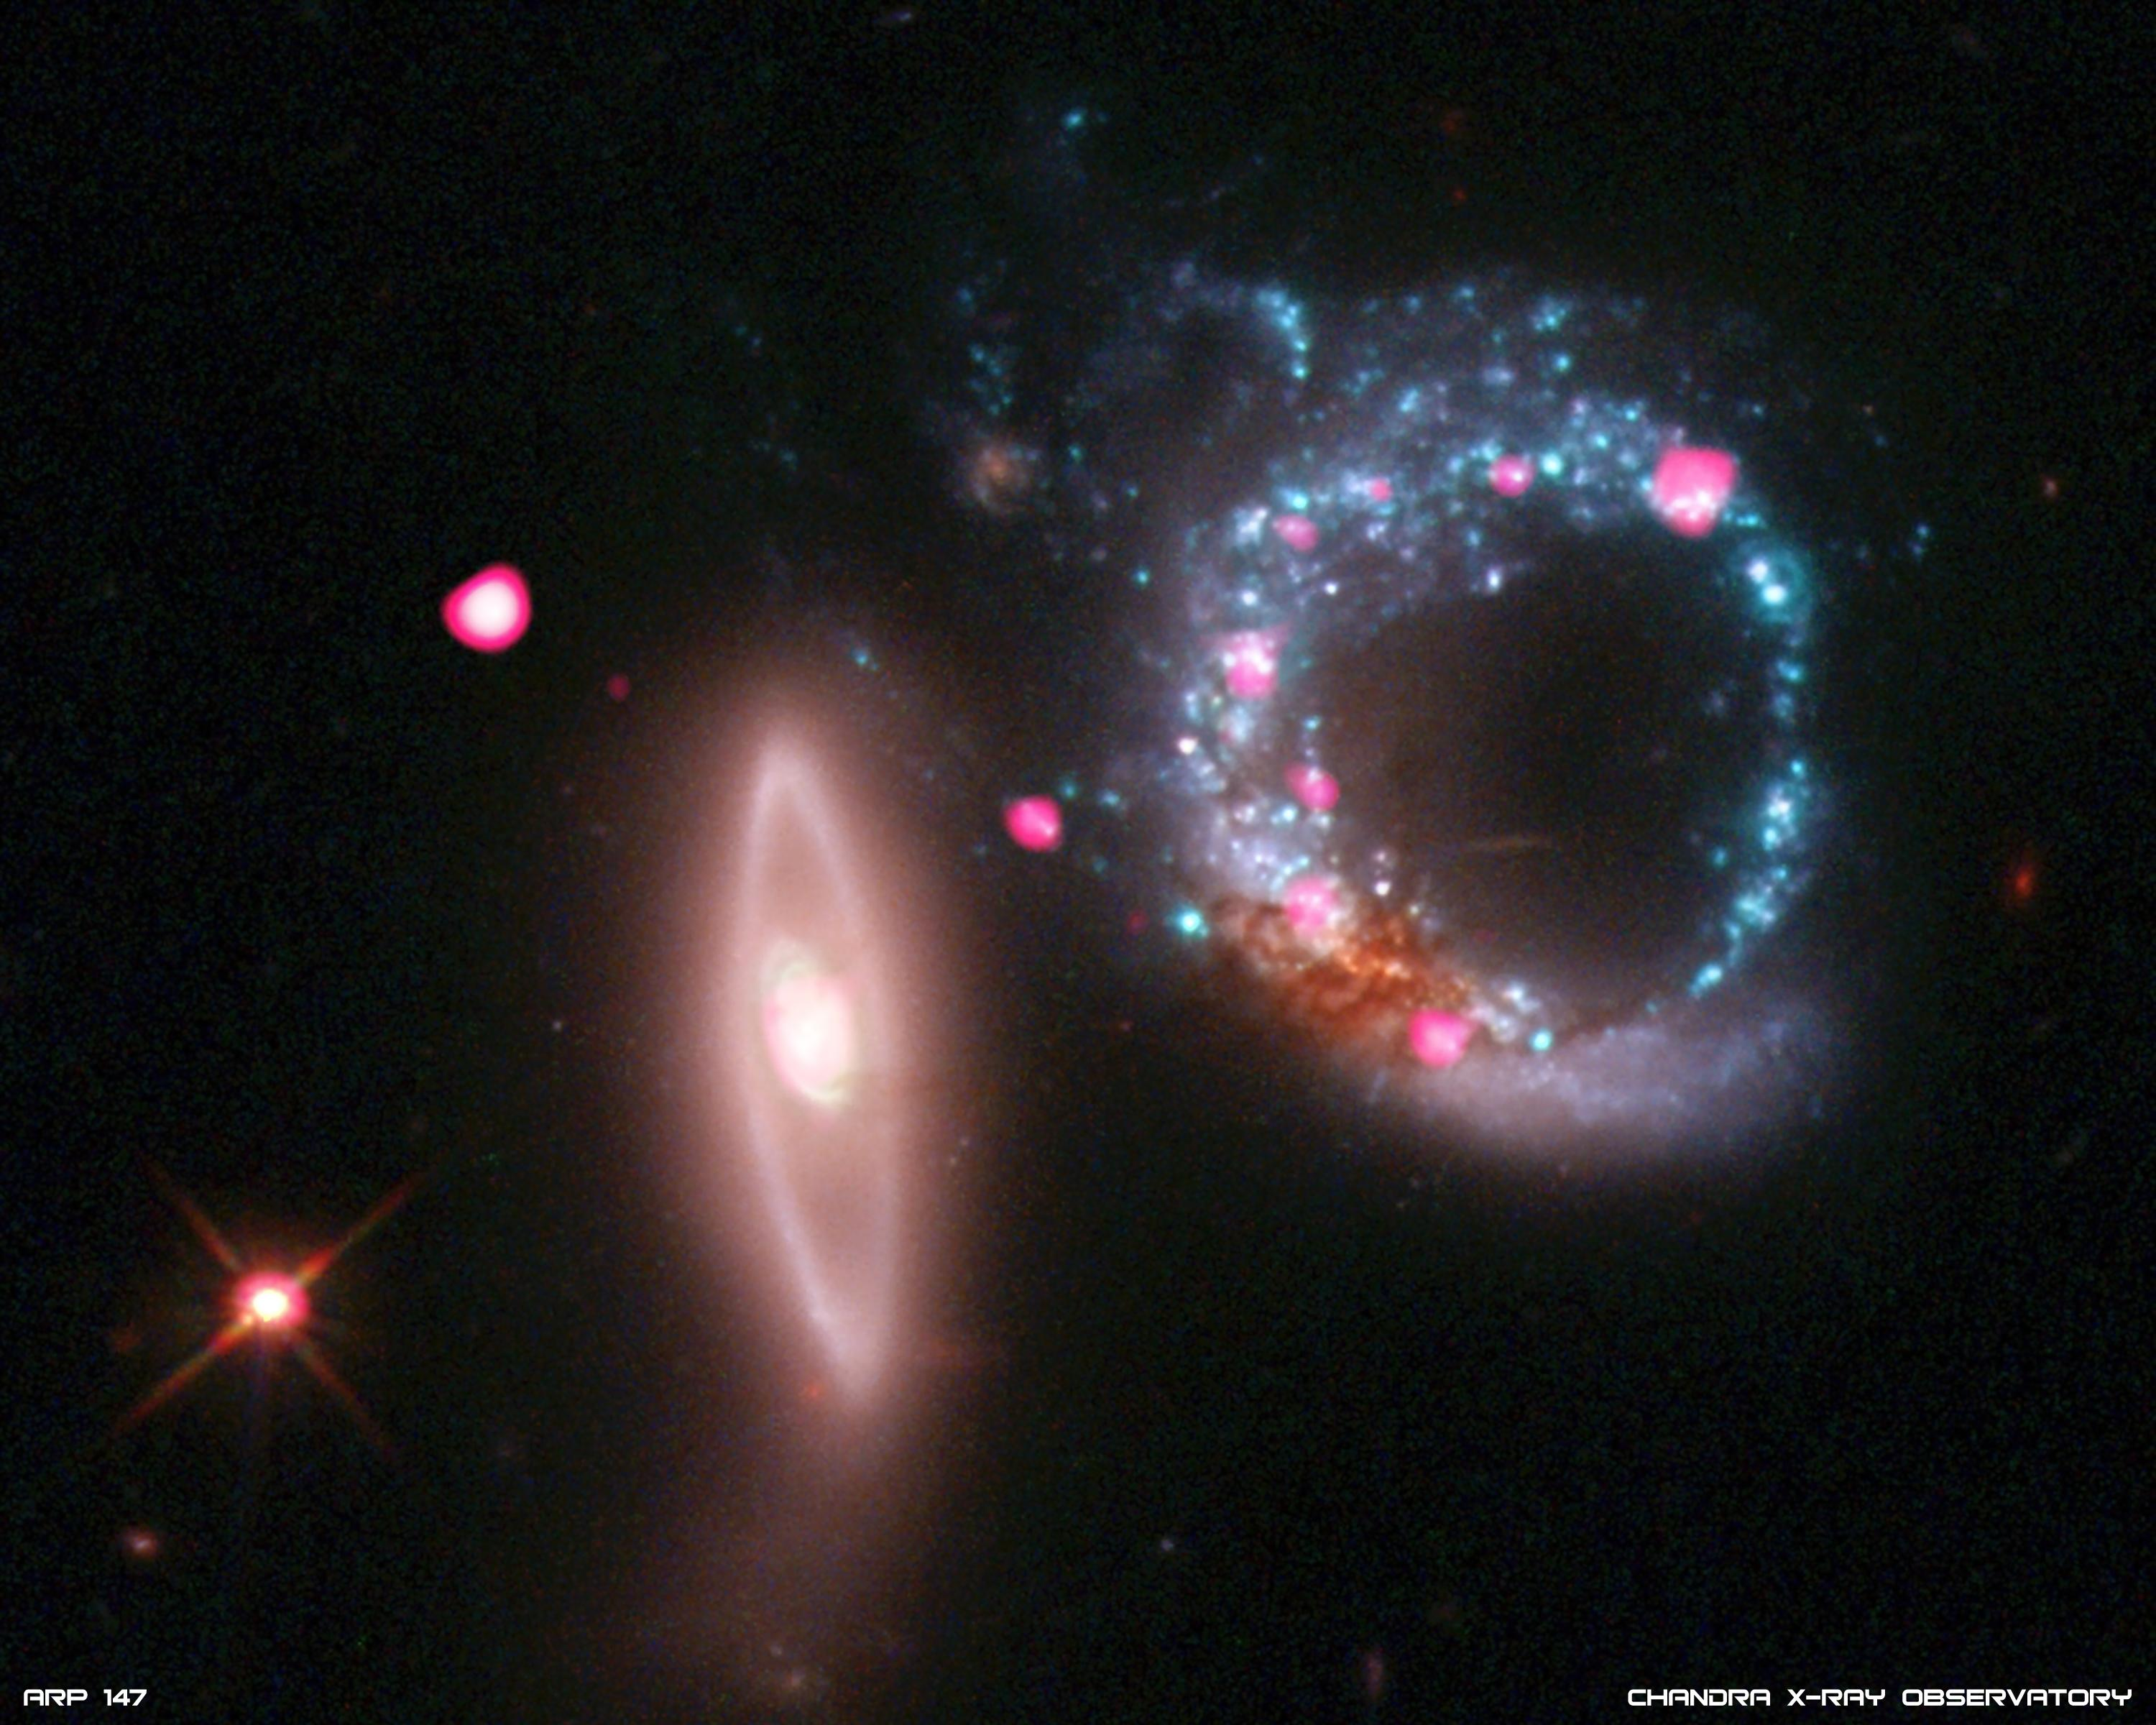 nasa pictures of black holes - photo #19